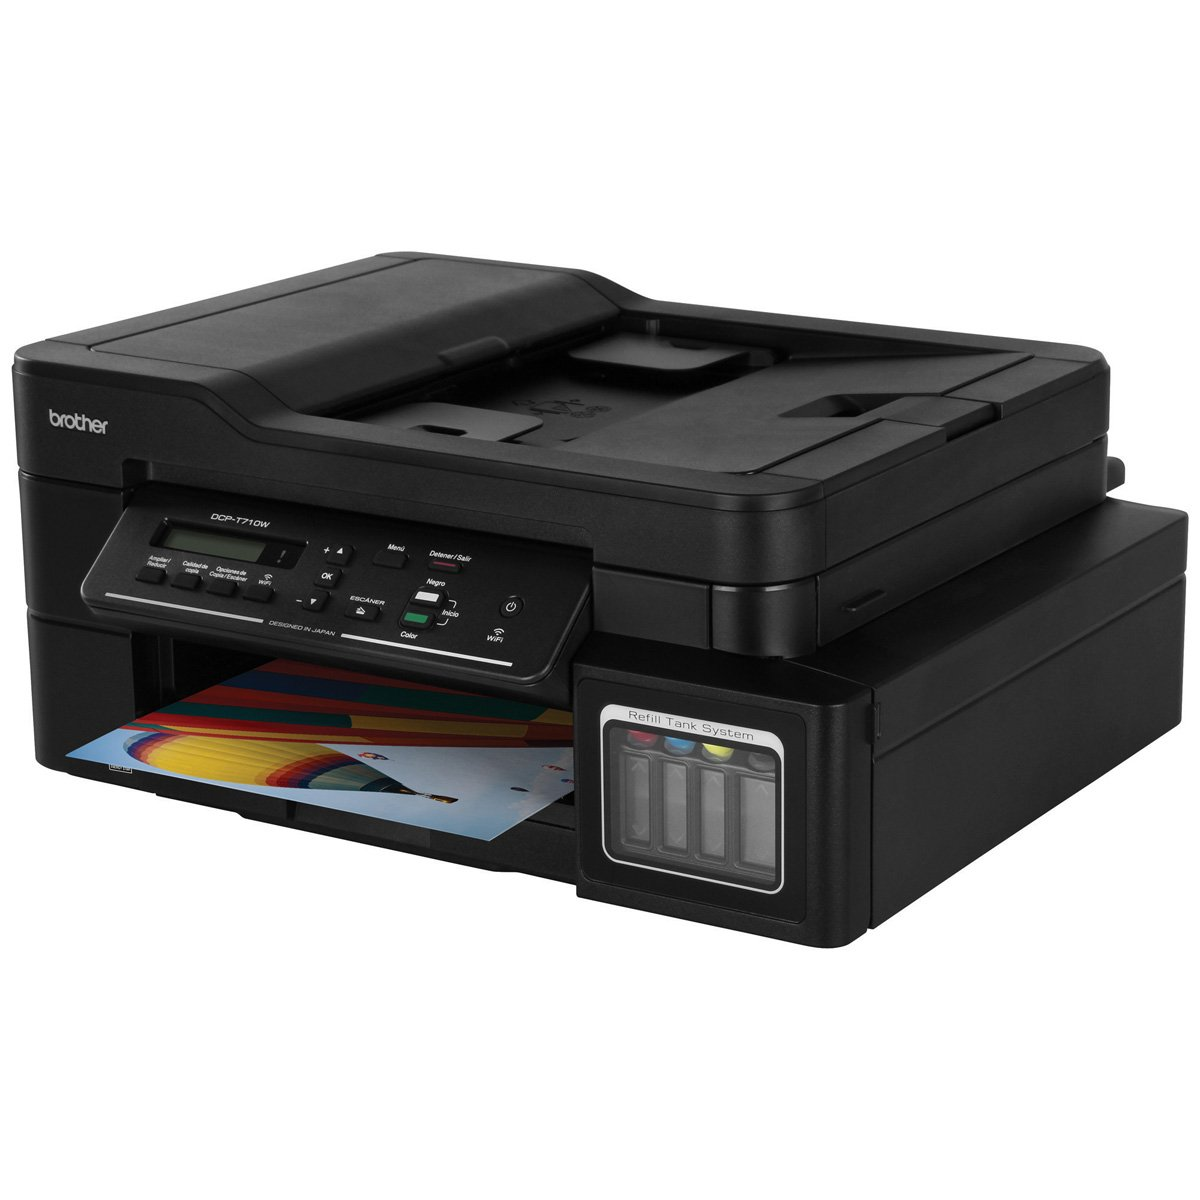 Multifunctional Brother DCPT710W | SEARS.COM.MX - Me entiende!